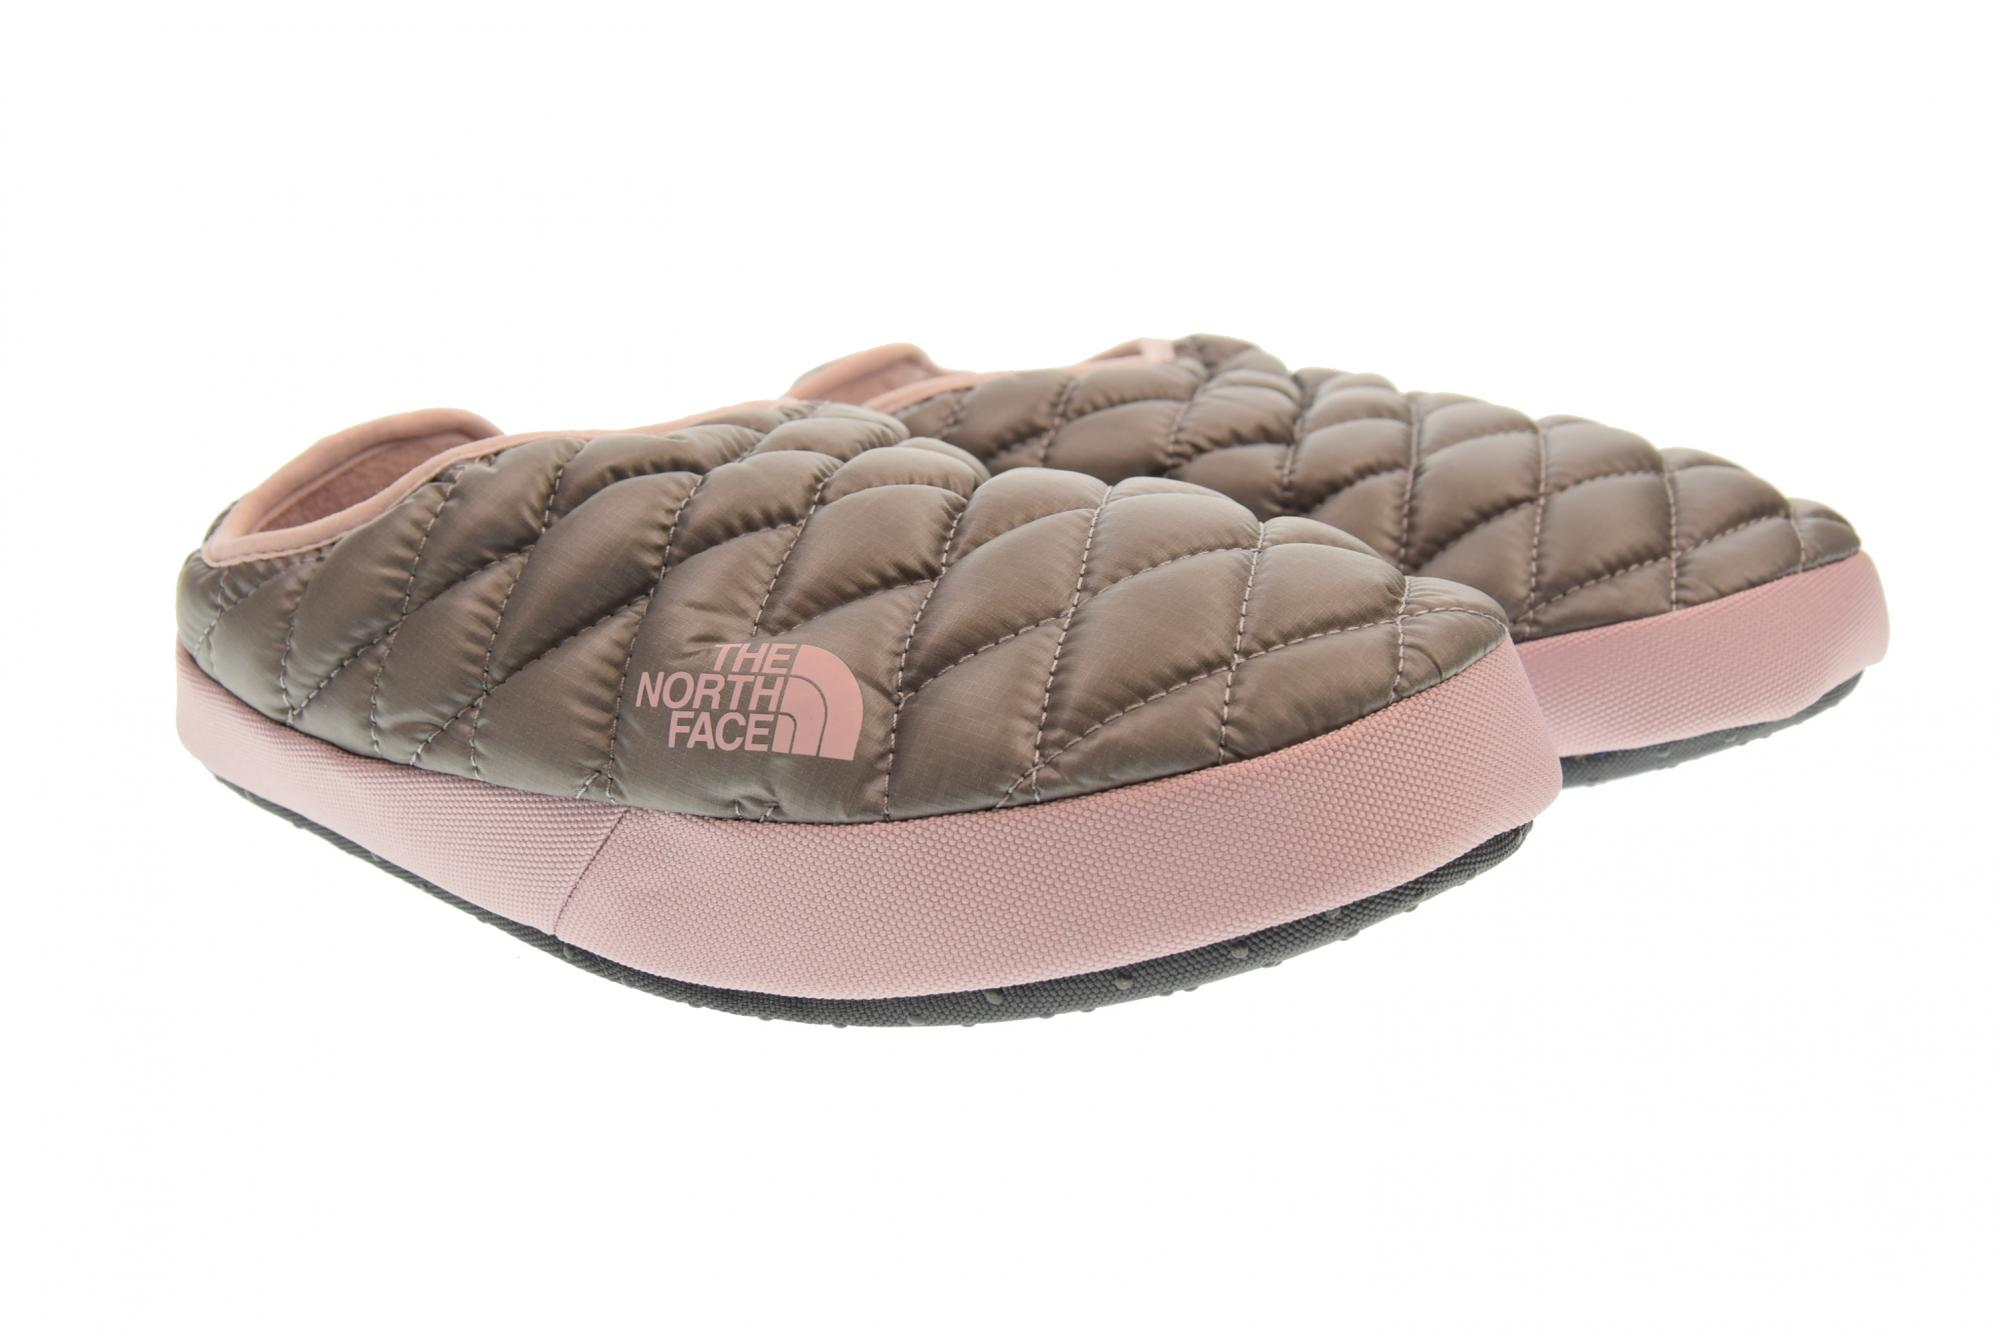 The North Face scarpe donna pantofole T933ID8NA A18